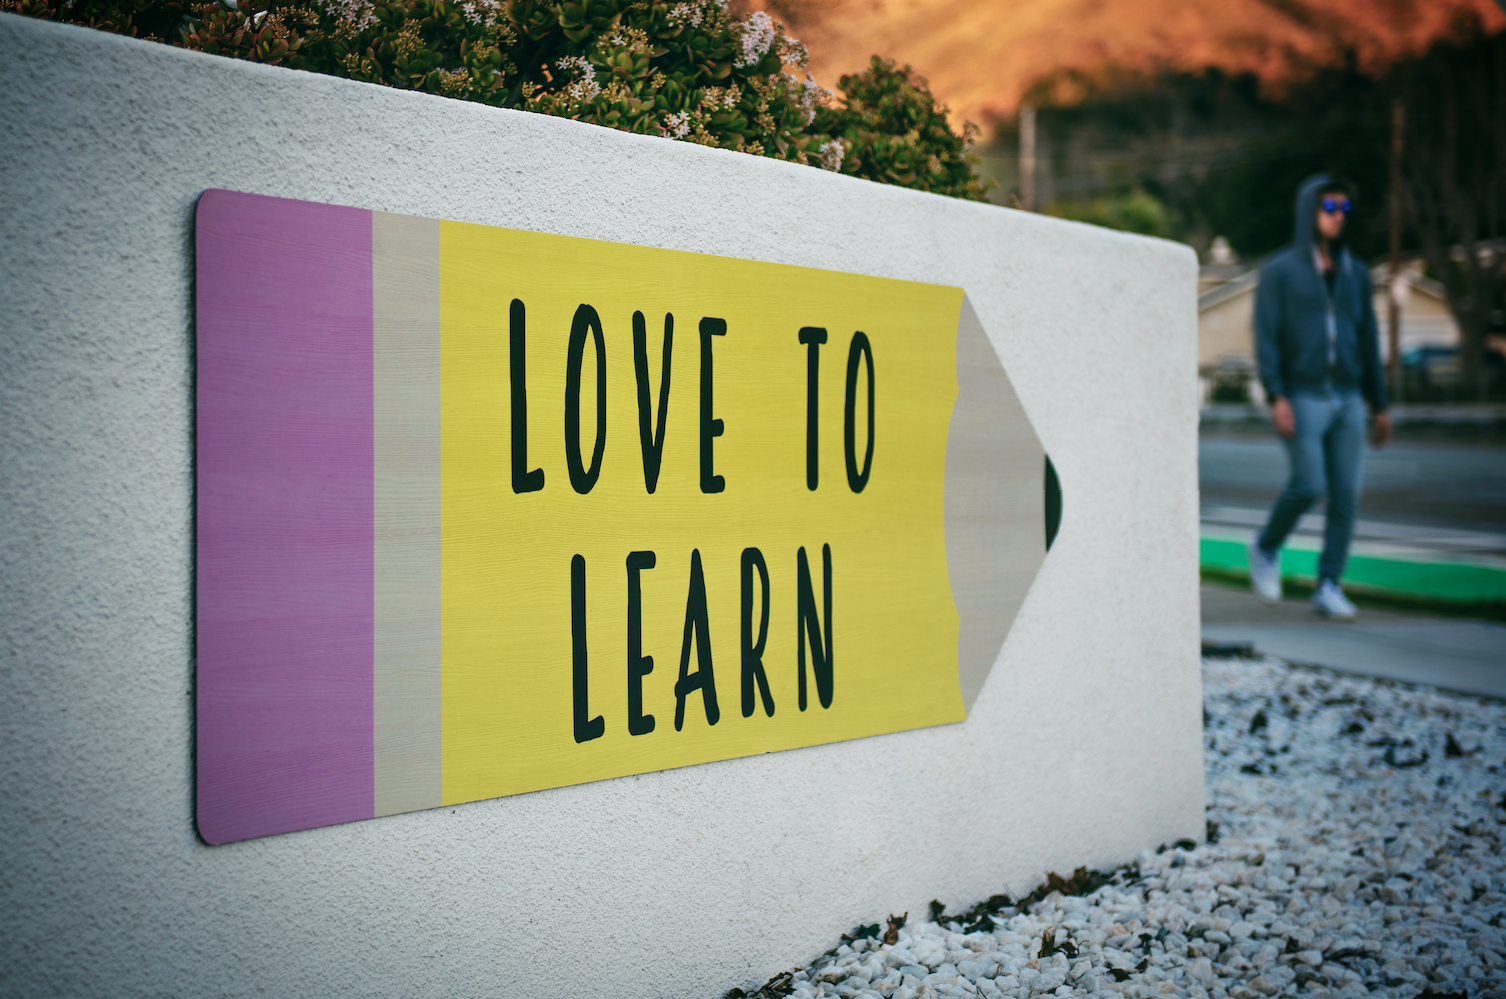 motivating sign of learning